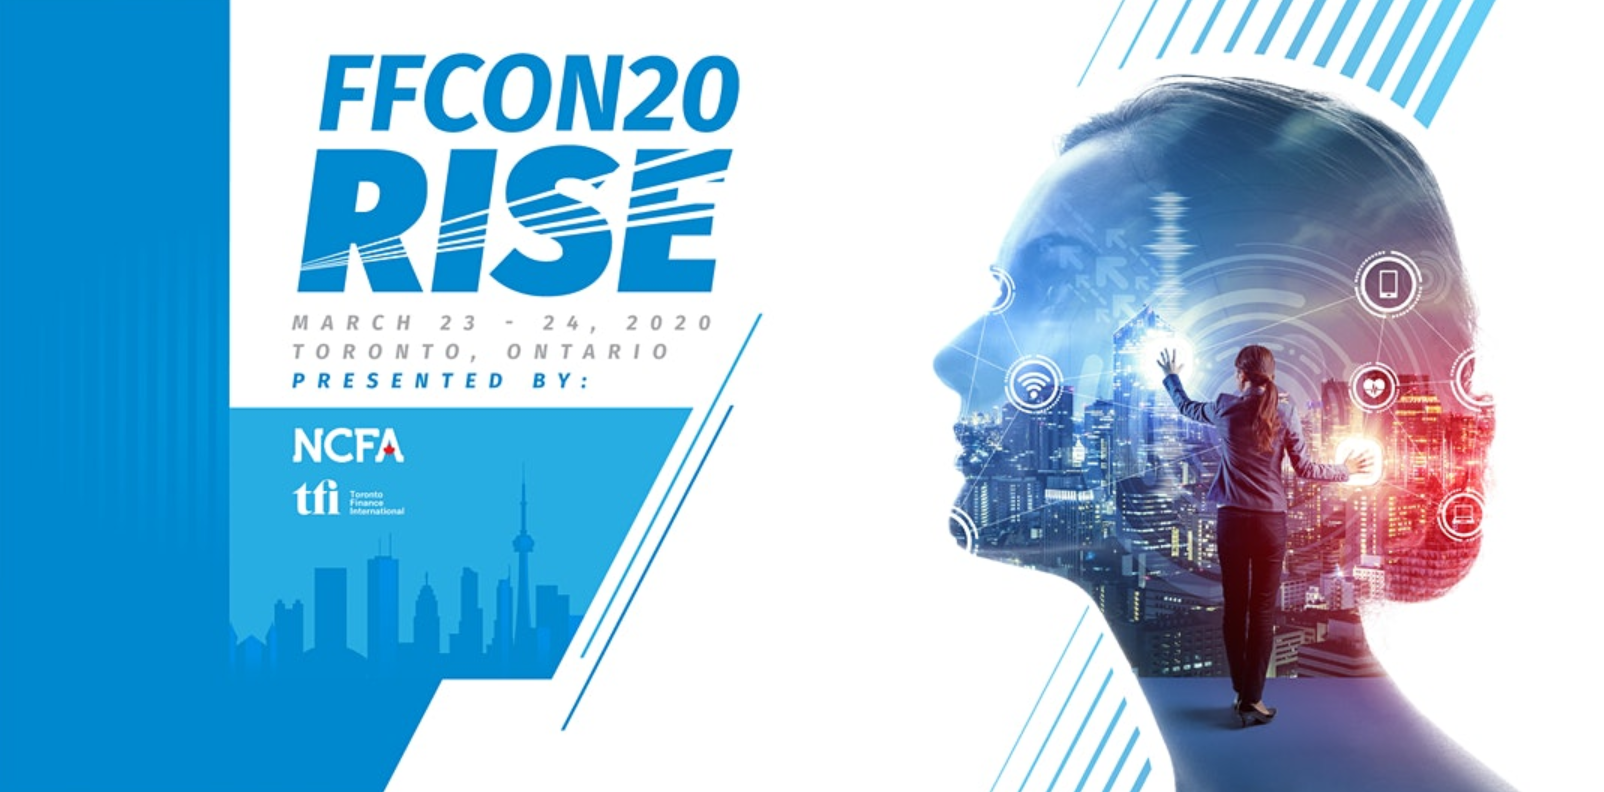 RISE Fintech Financing Conference March 23 24 Toronto 2020